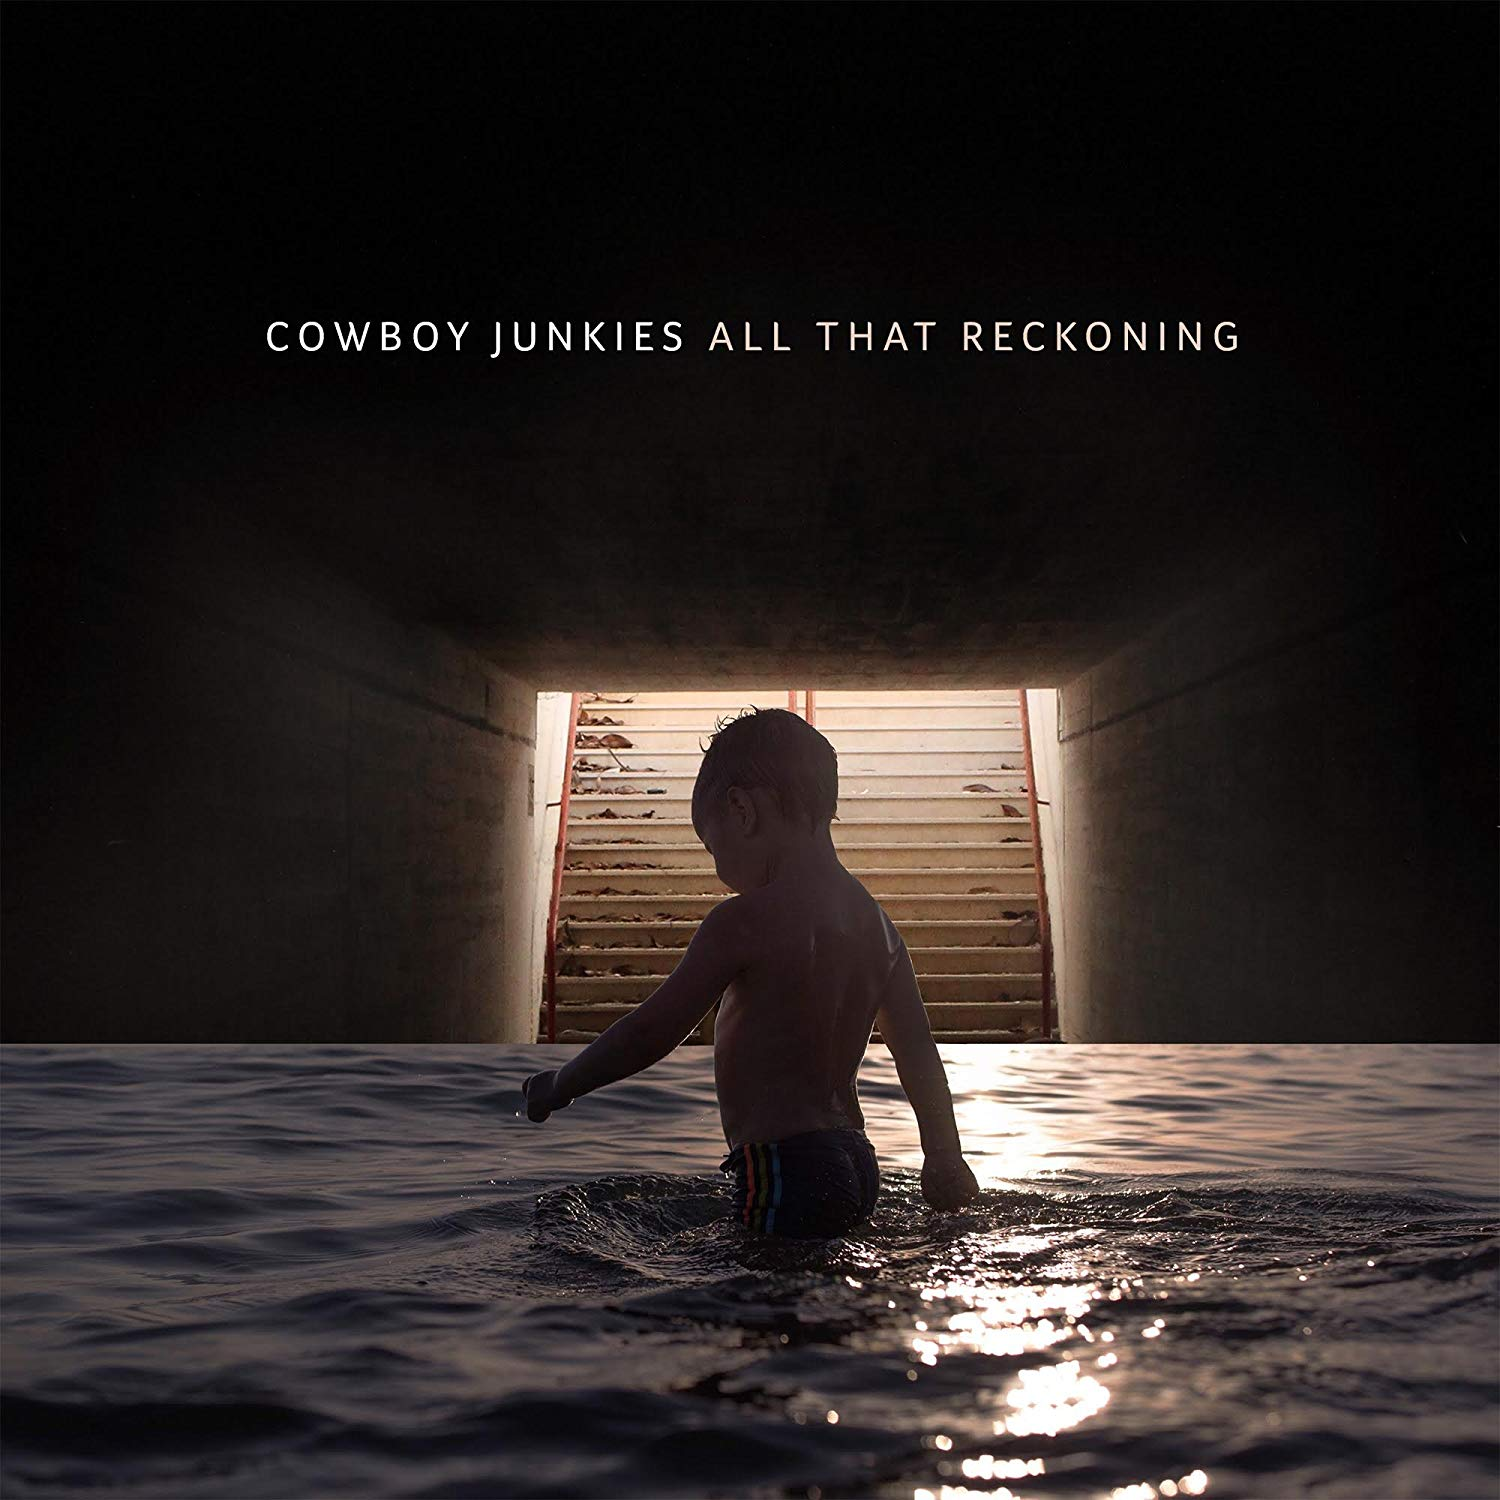 Cowboy Junkies: 'All That Reckoning'